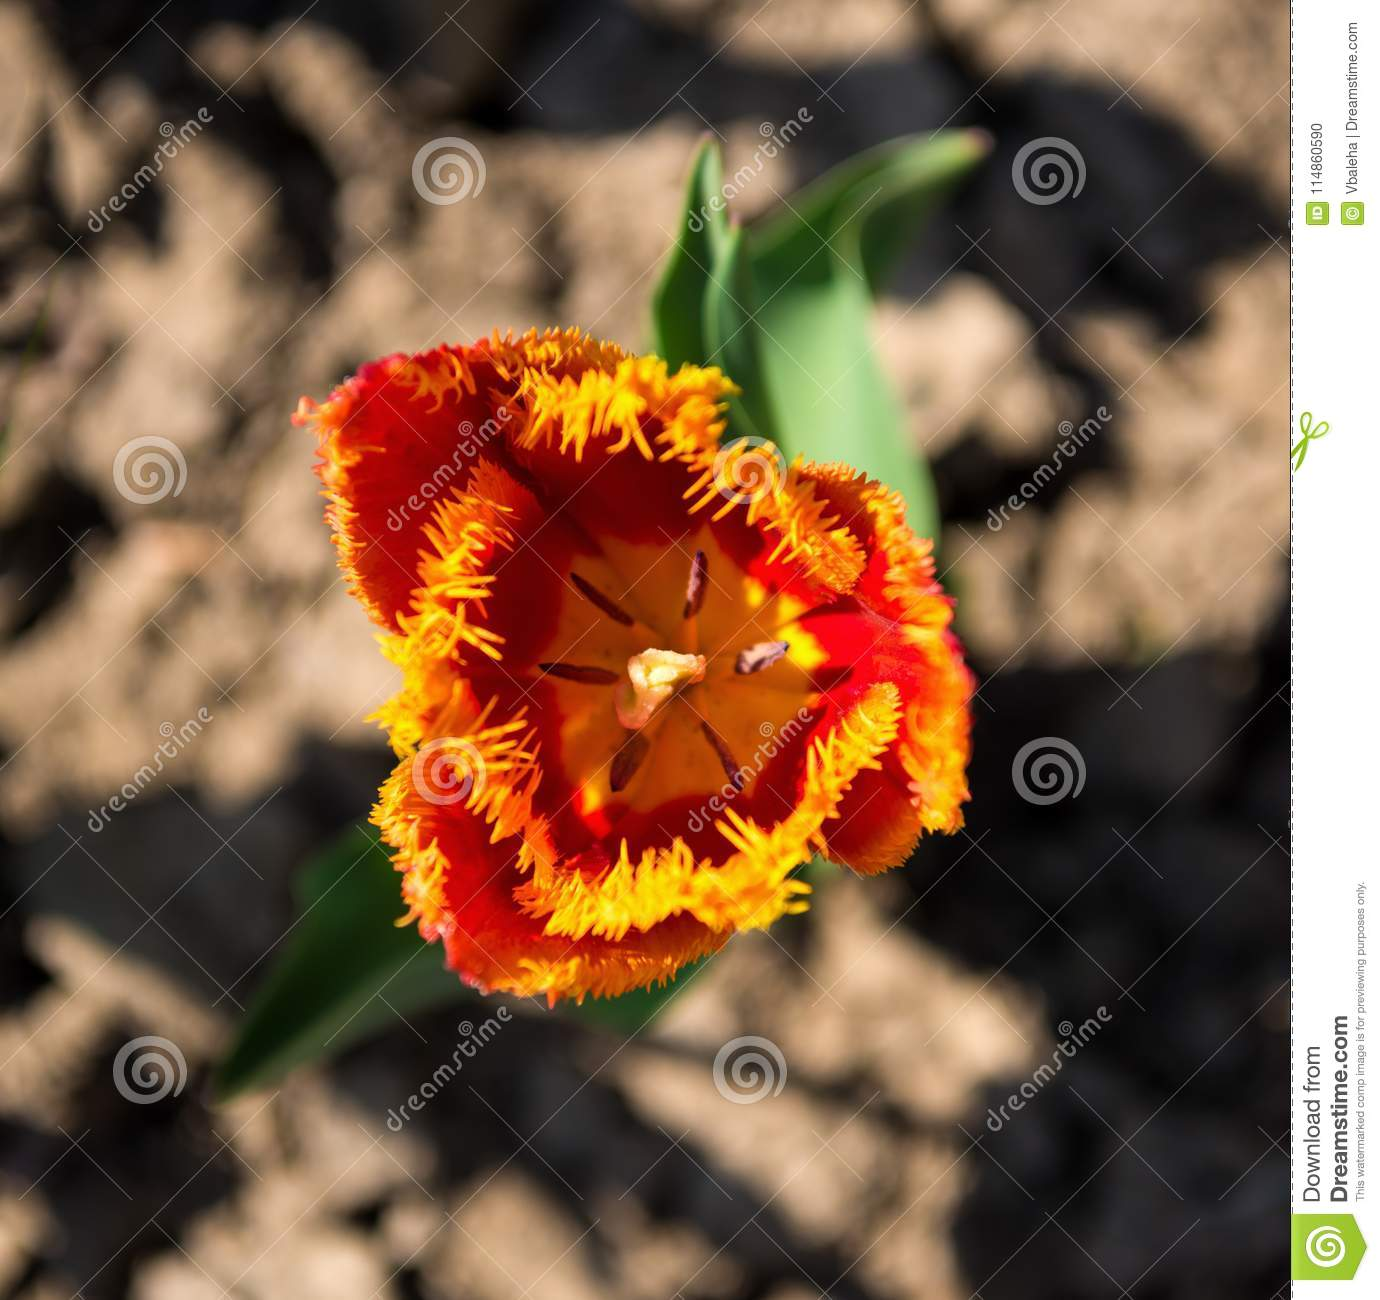 Red Tulip Flowers With Yellow Tips In Natural Environment Stock